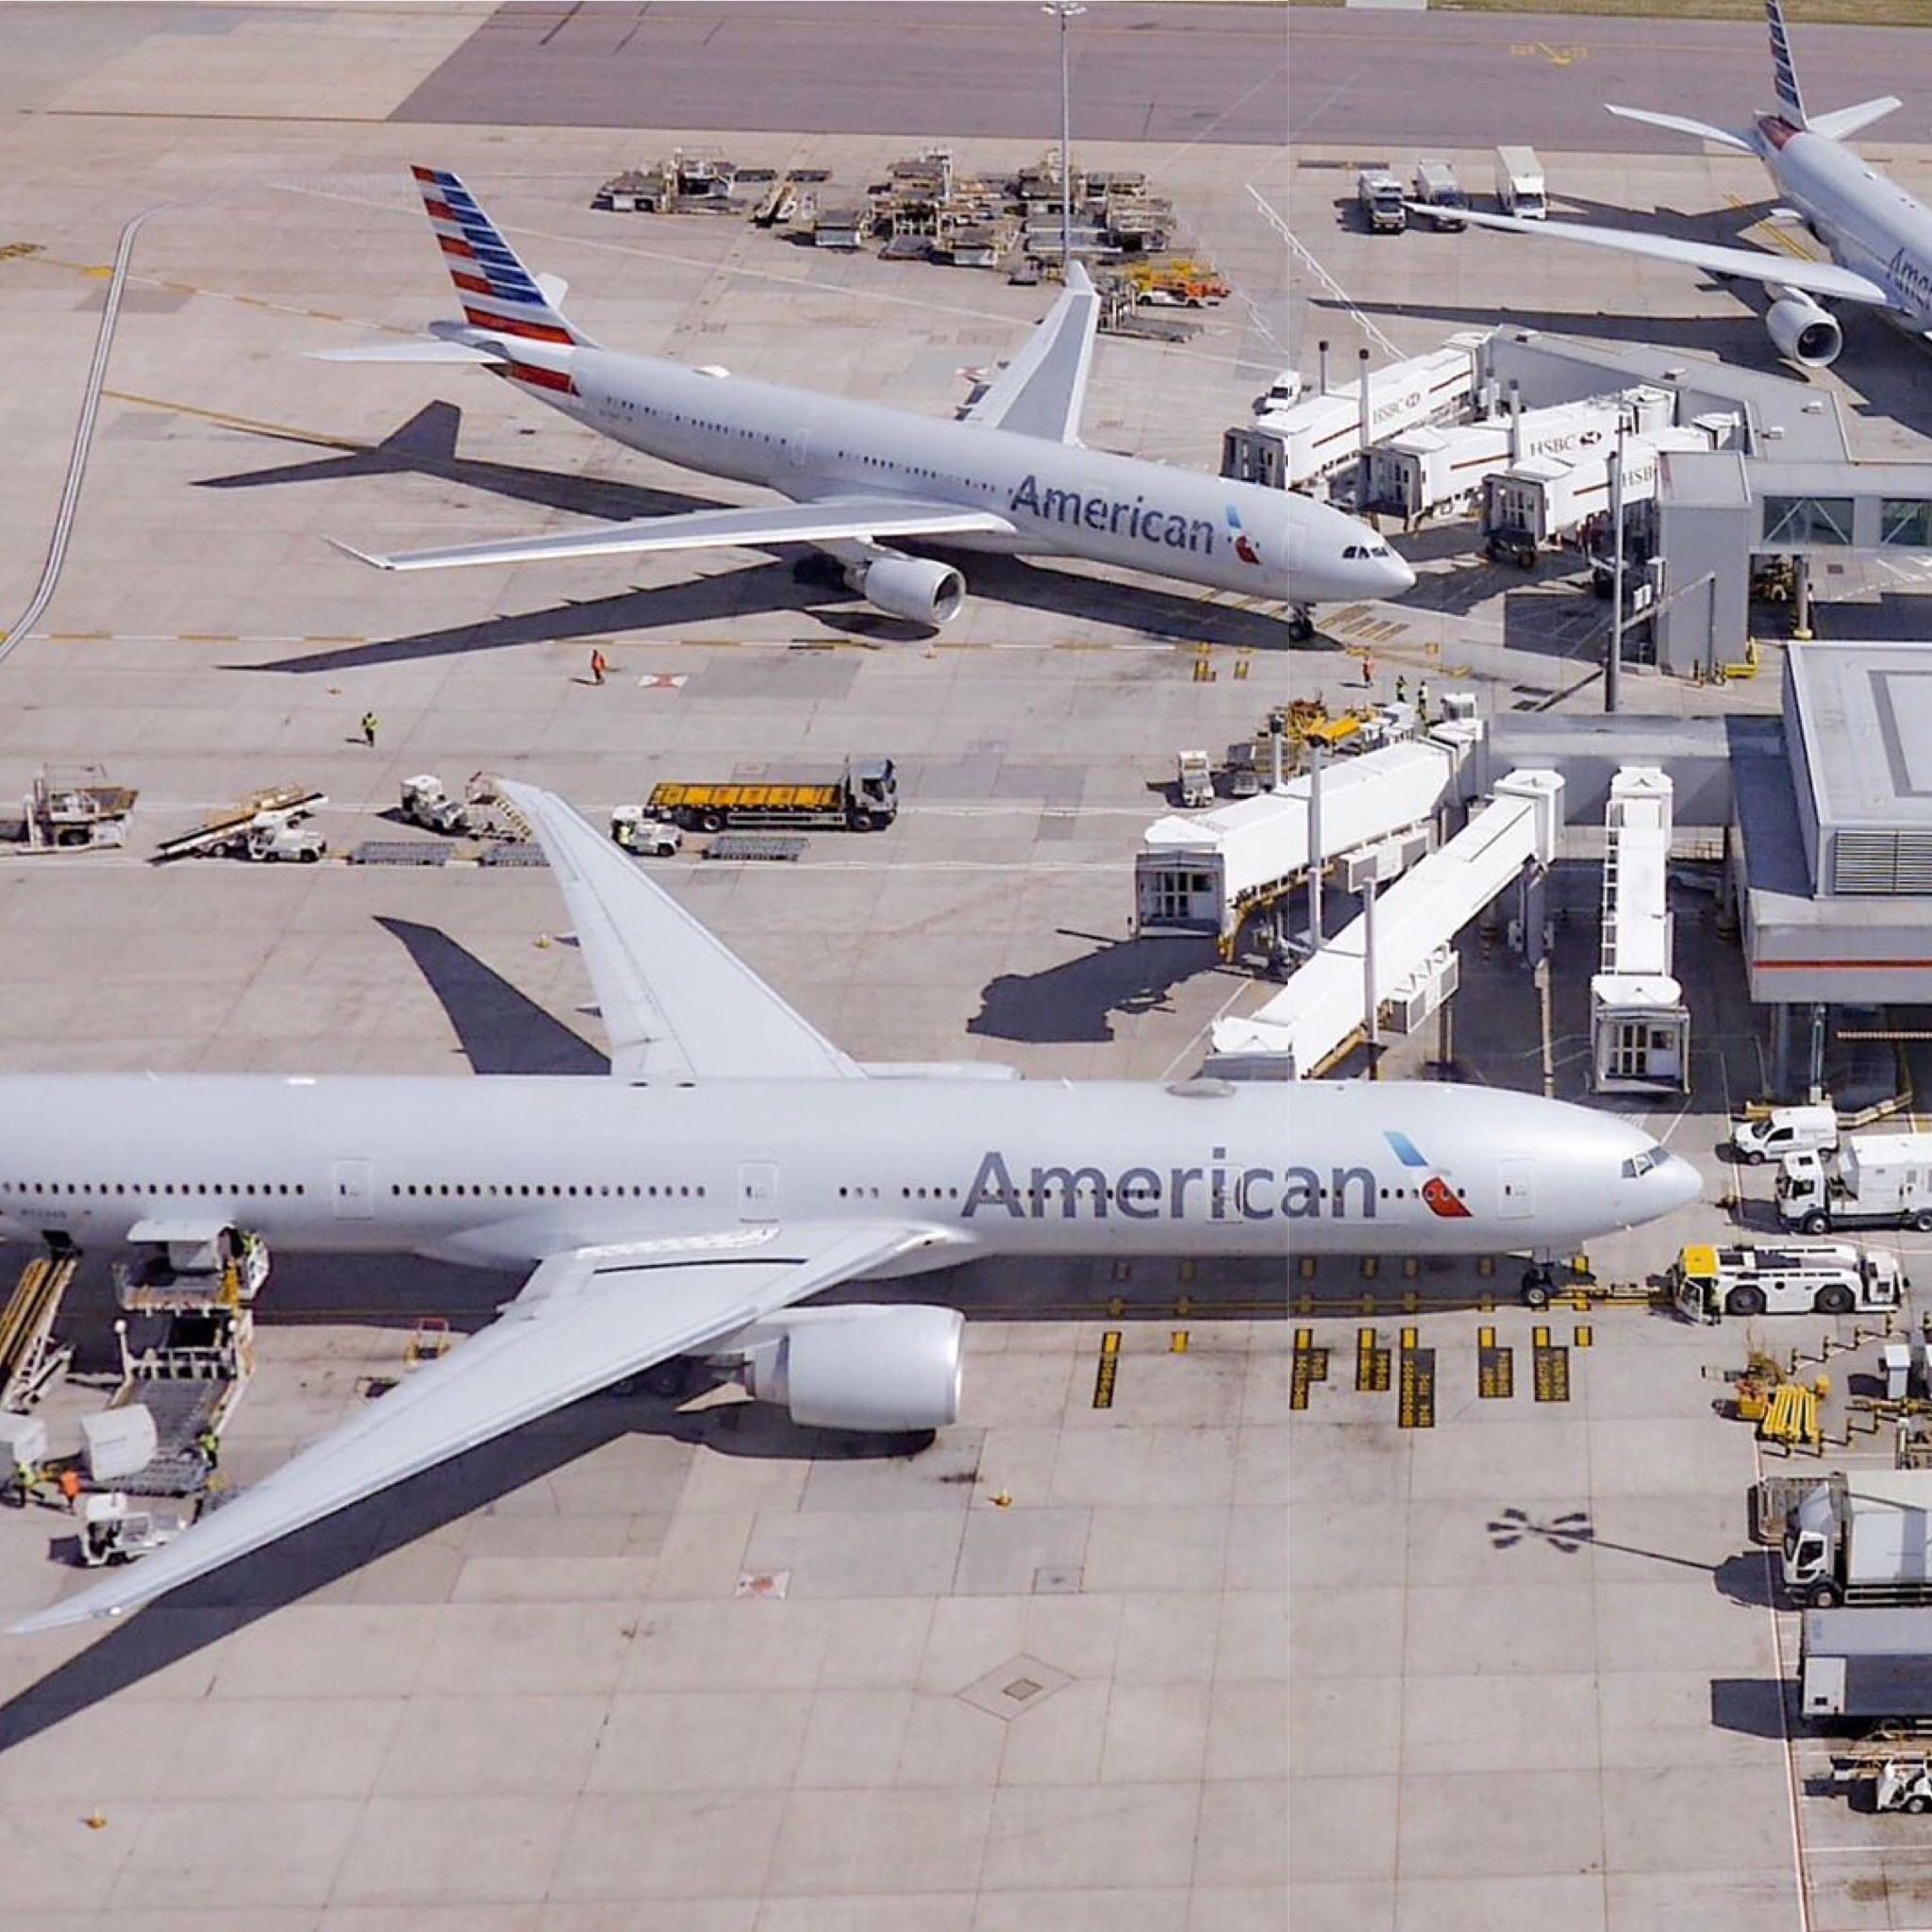 airport airplane americanairlines Boeing aircraft